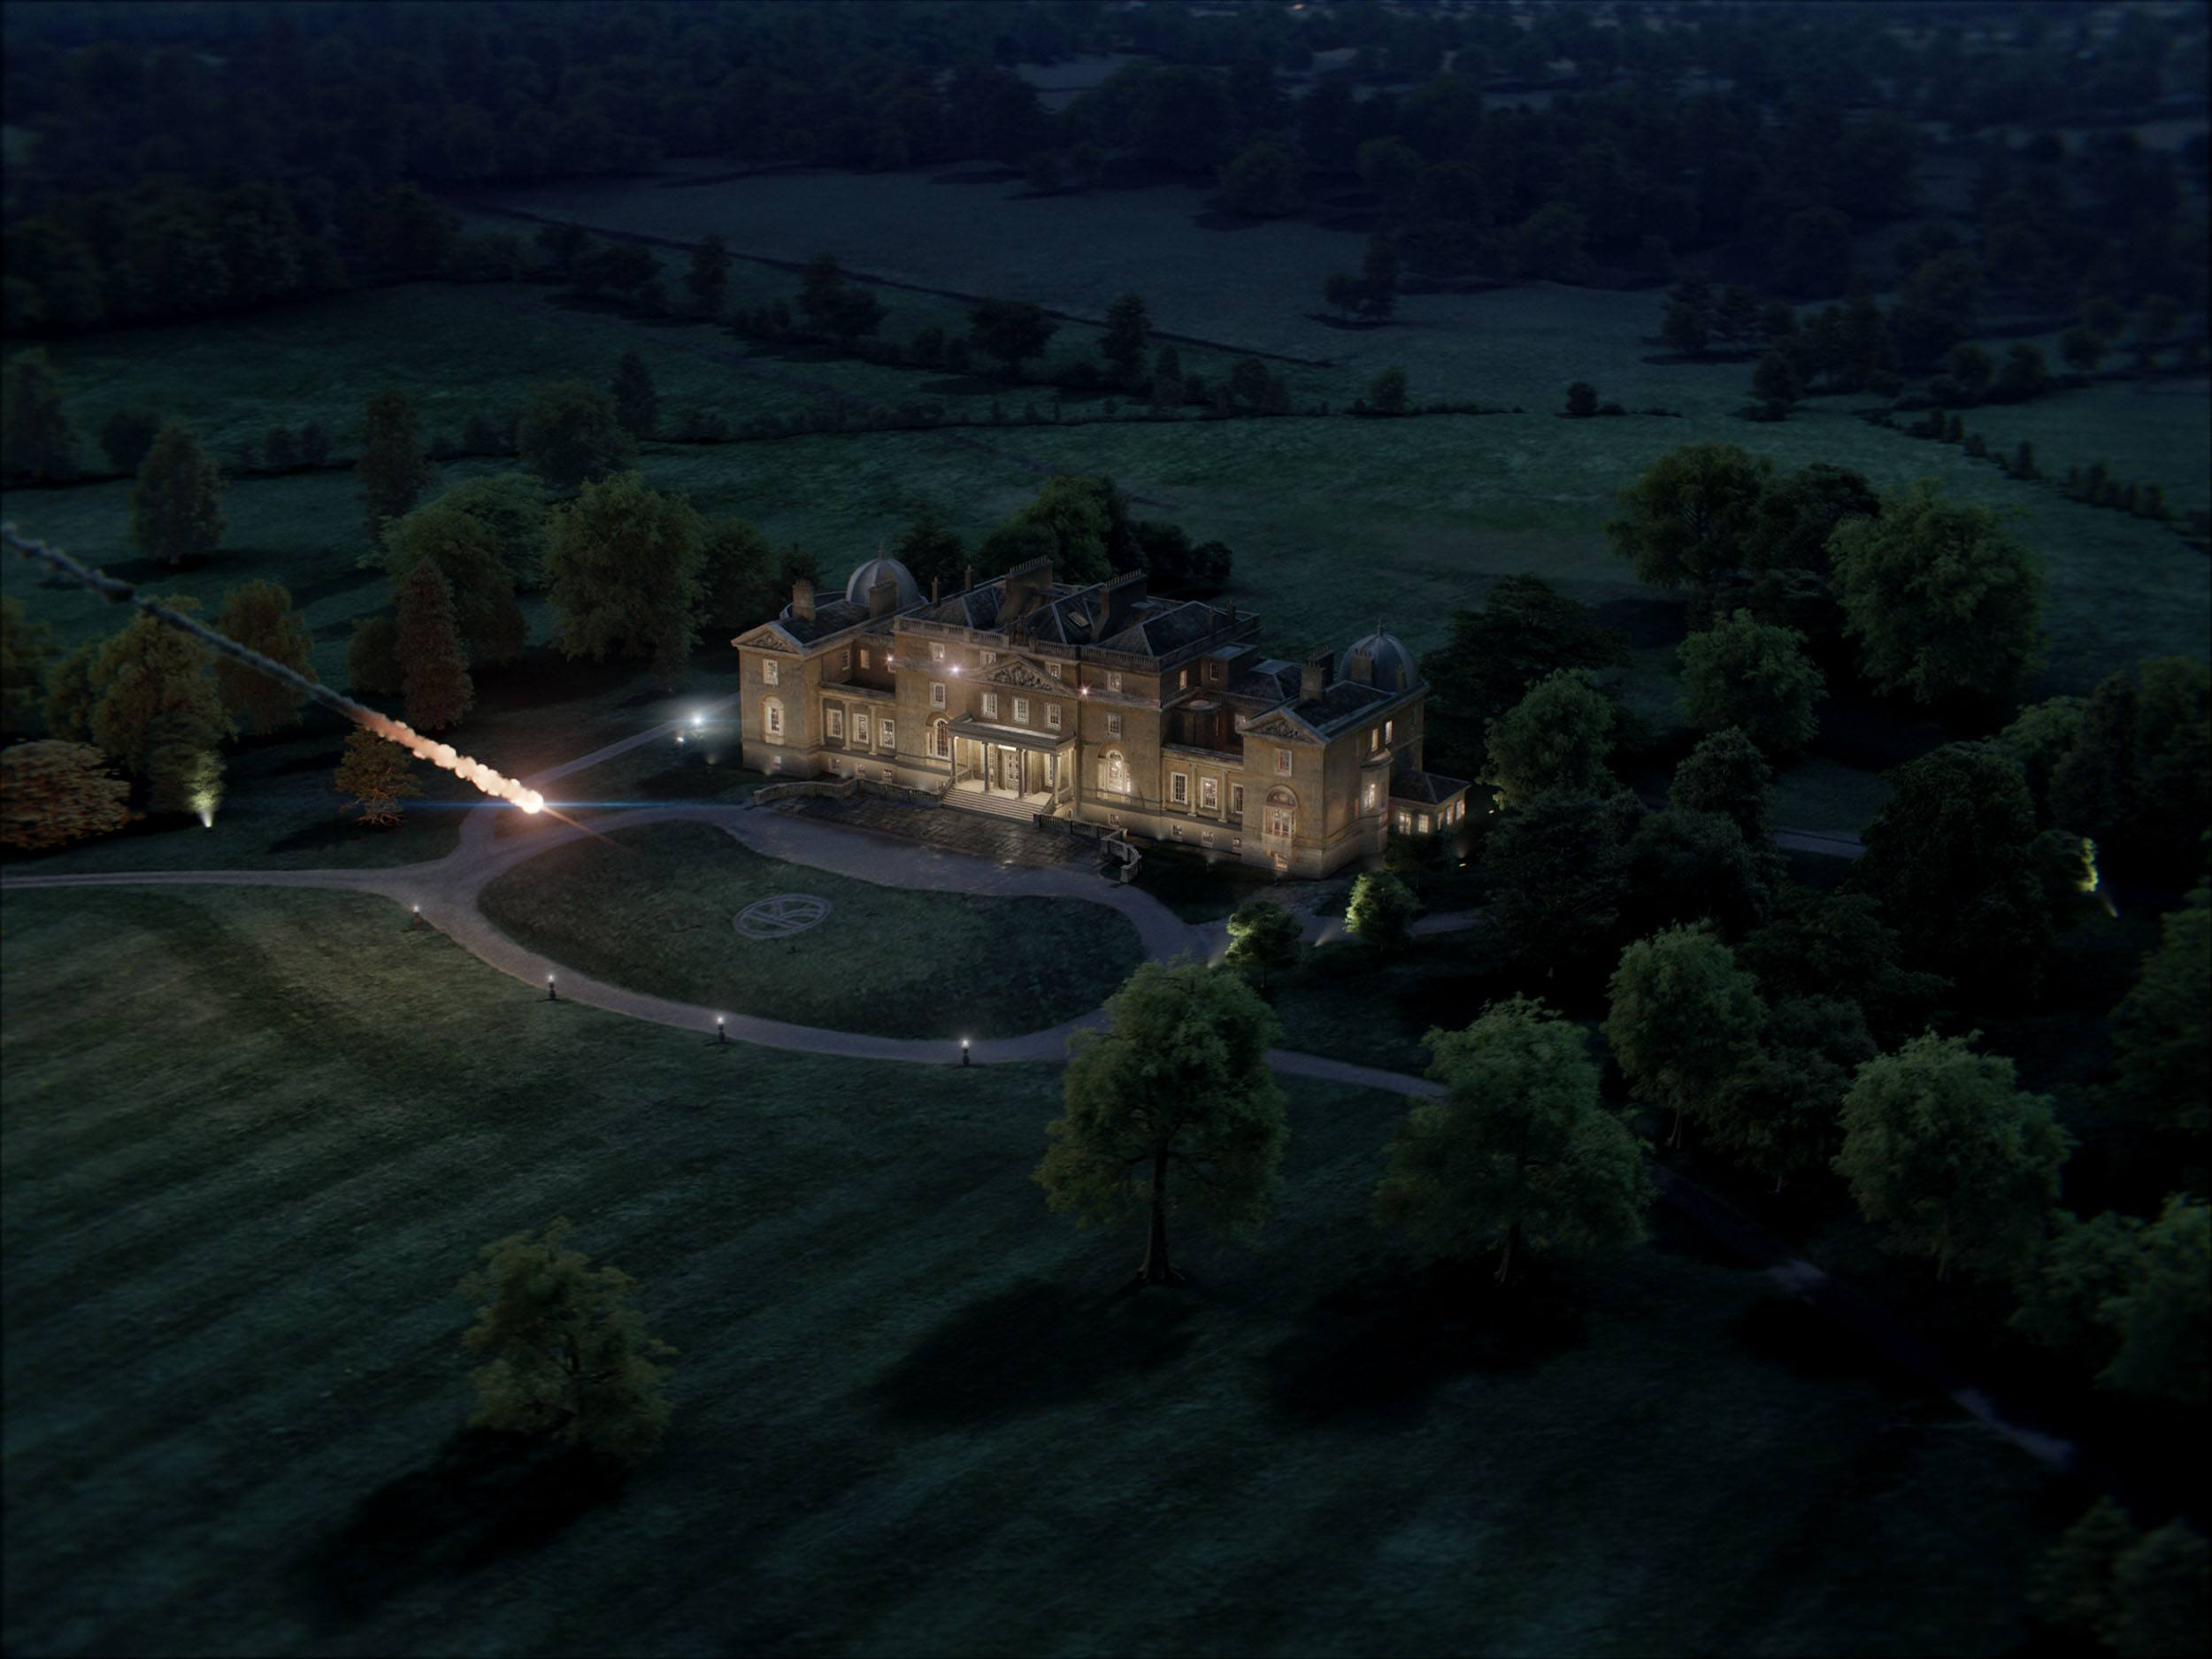 The nuclear missile approaching the Kingsman HQ mansion in Kingsman: The Golden Circle (Sony Pictures Imageworks)